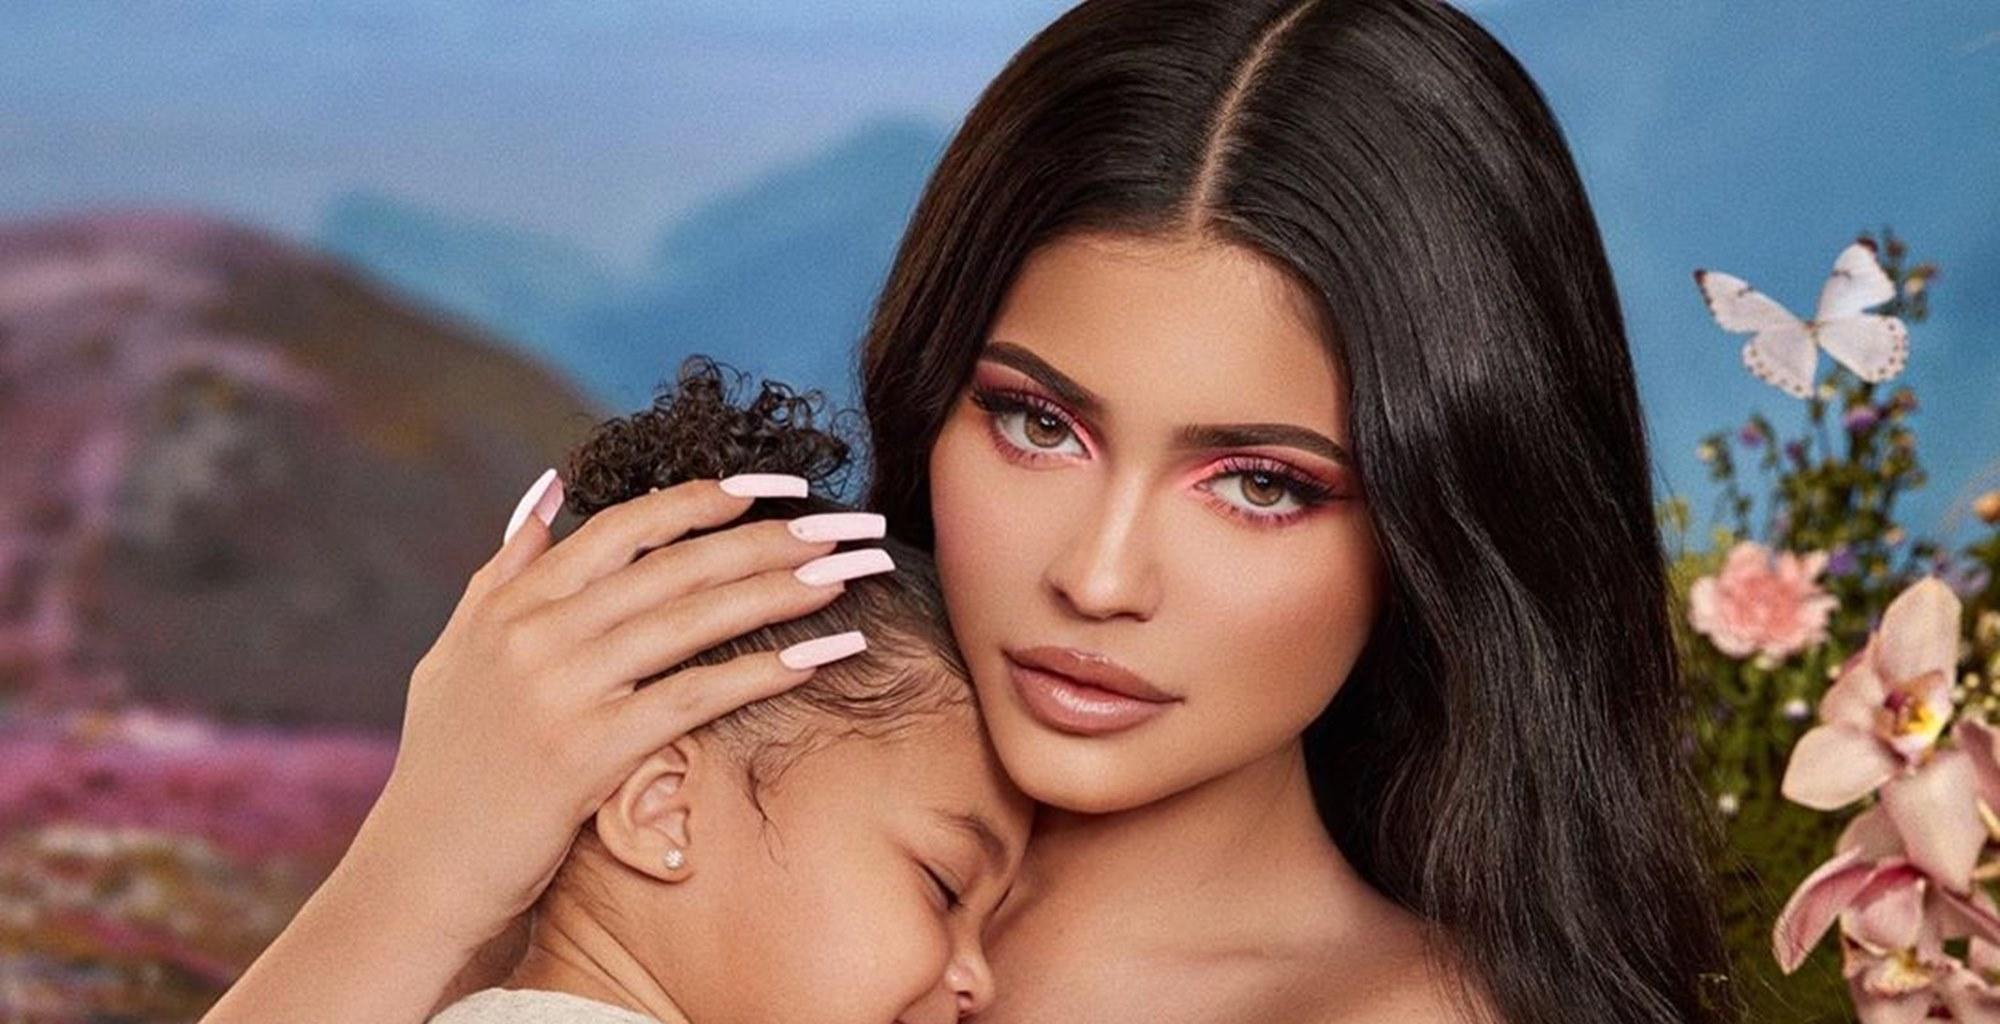 Kylie Jenner's Baby Daddy, Travis Scott, Is Acting Like All Other Humans As The Coronavirus Pandemic Leaves Him Crippled With Fear